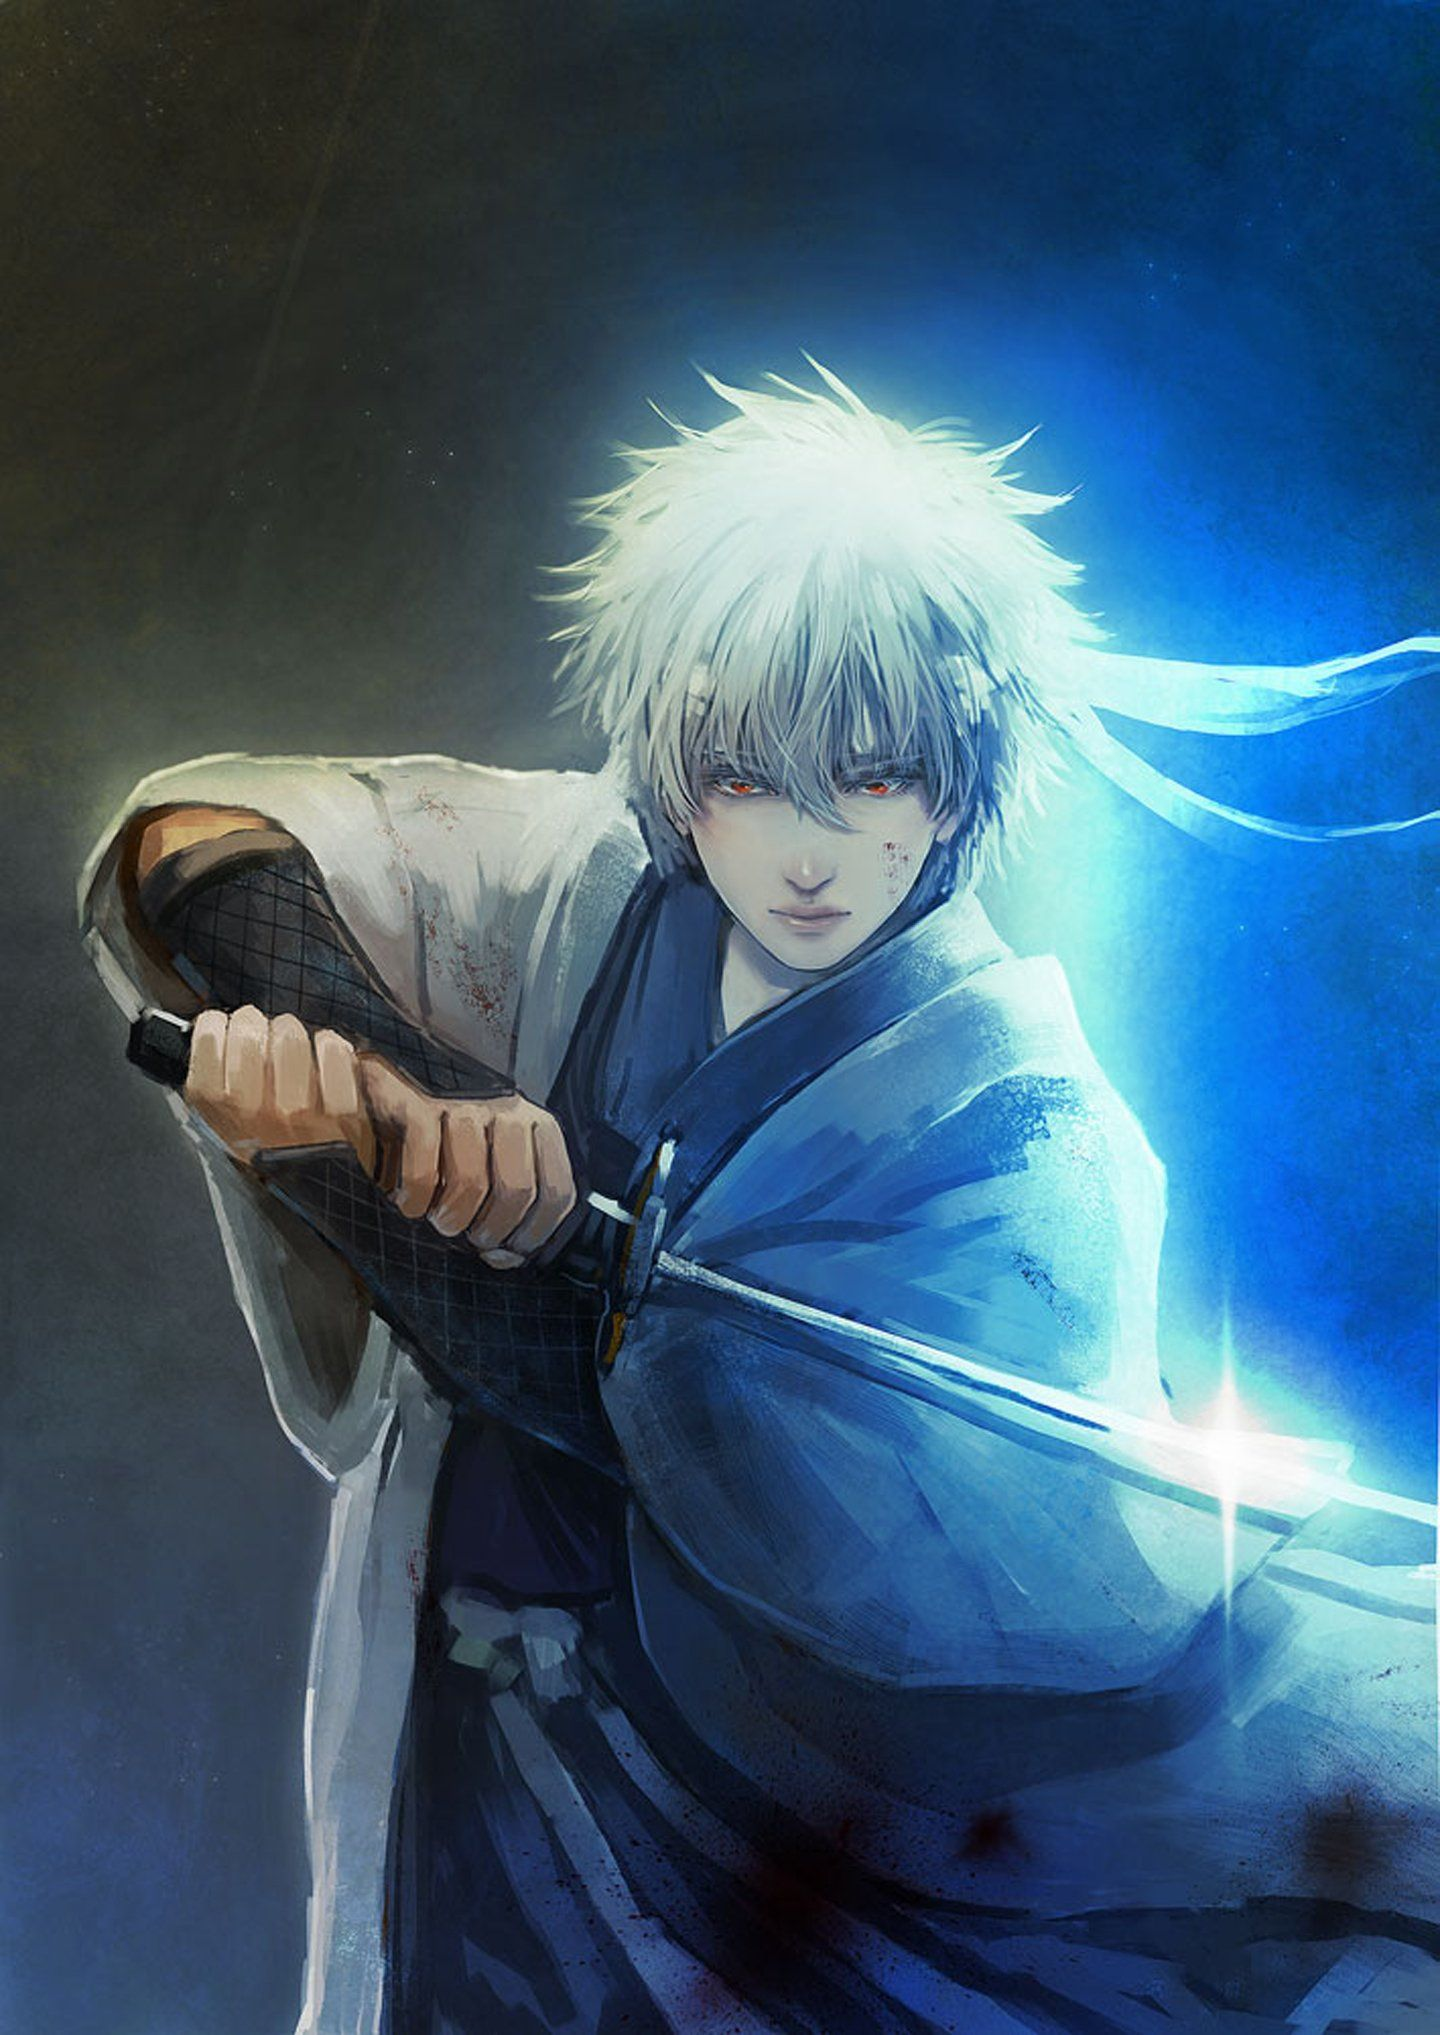 1440x2035 Anime series gintama character sword male guy light wallpaper ...